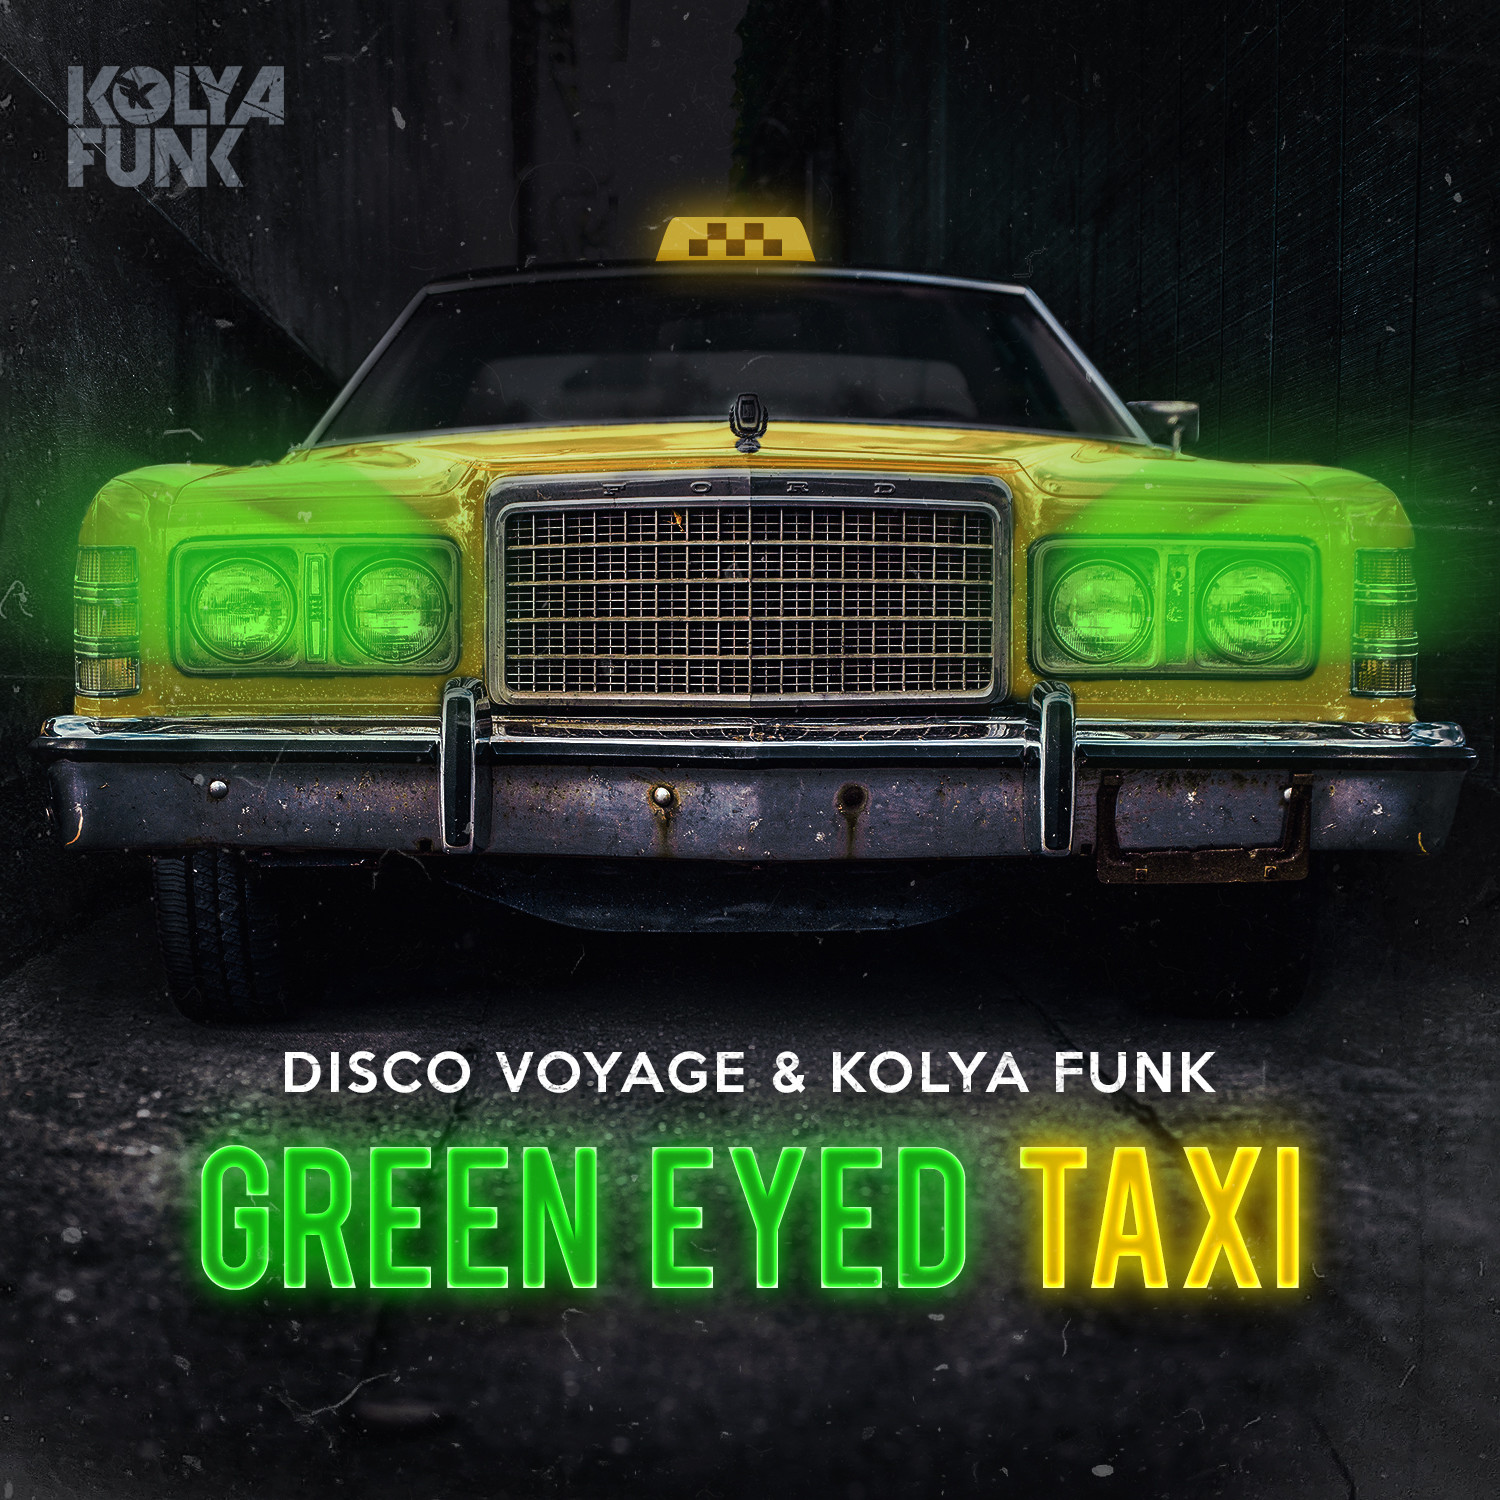 Disco Voyage & Kolya Funk - Green Eyed Taxi (Club Mix)